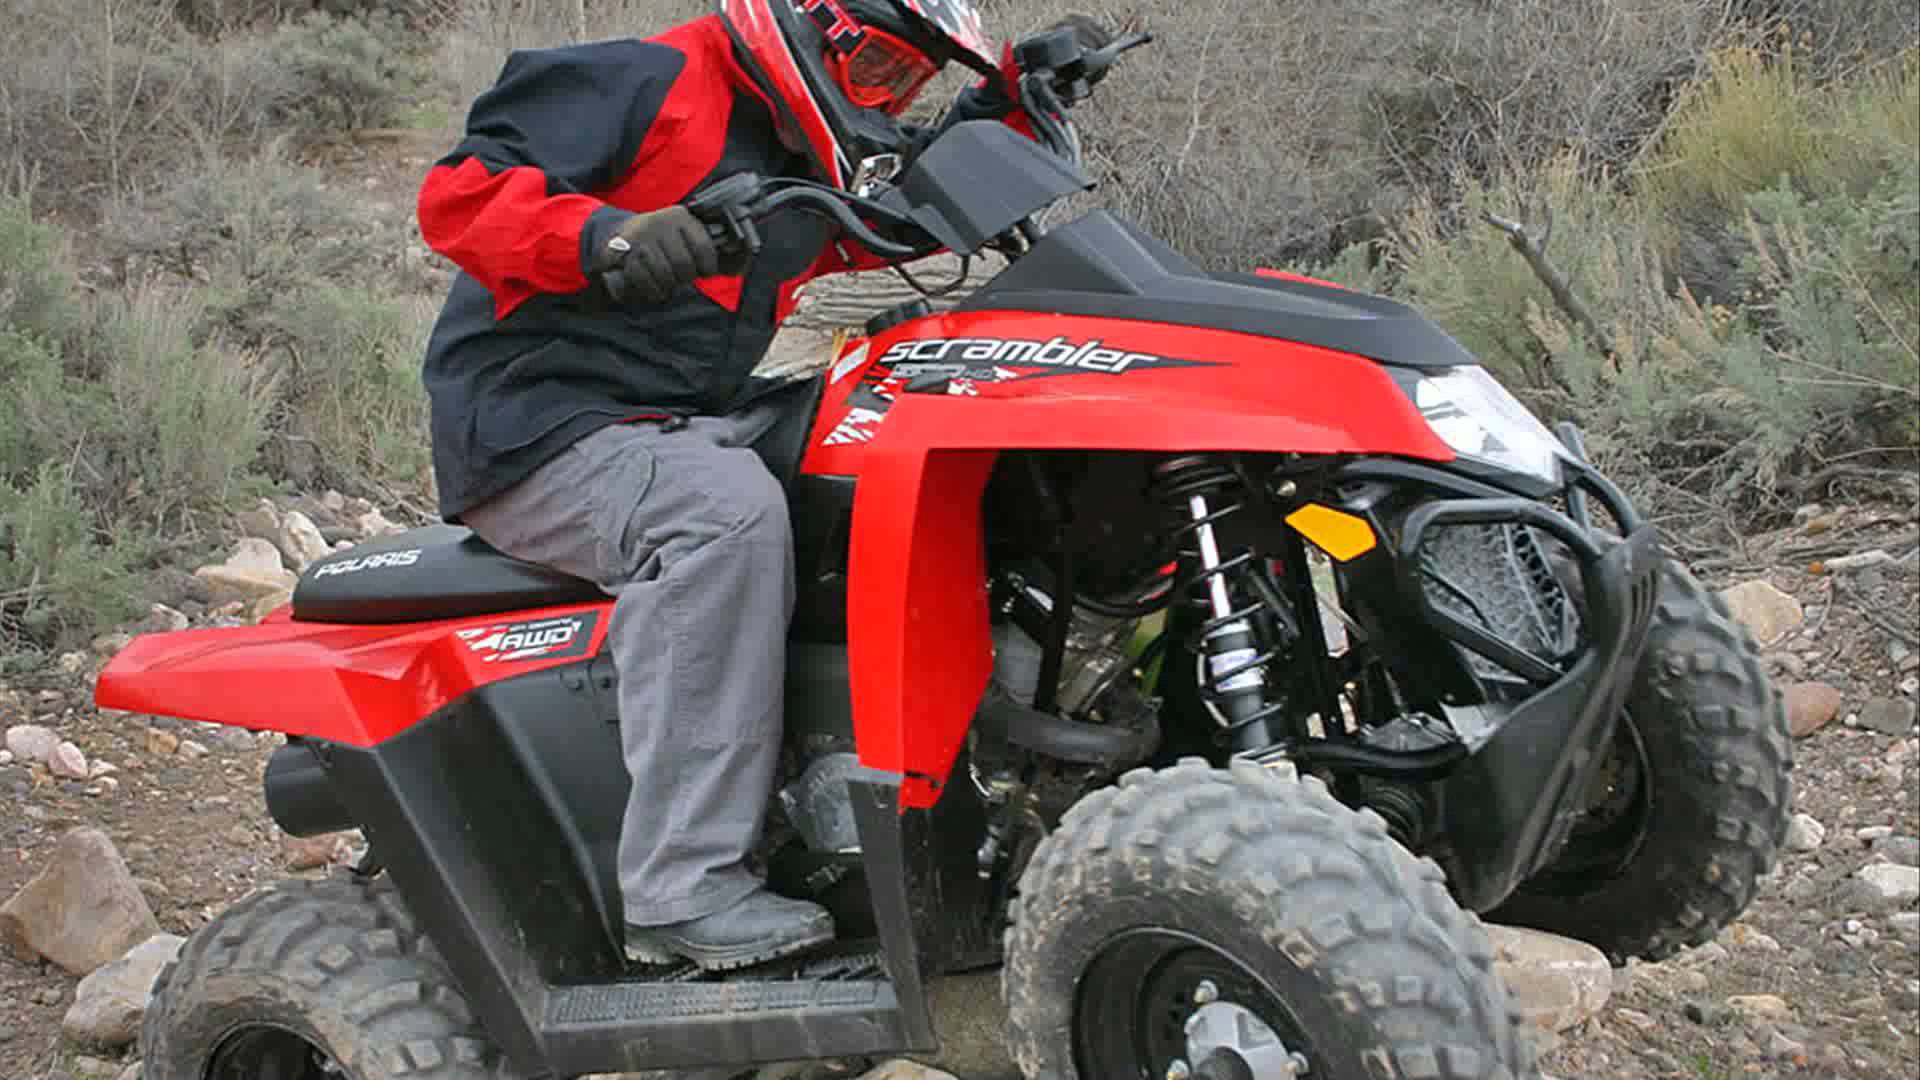 Polaris Scrambler 400 1999 images #120841